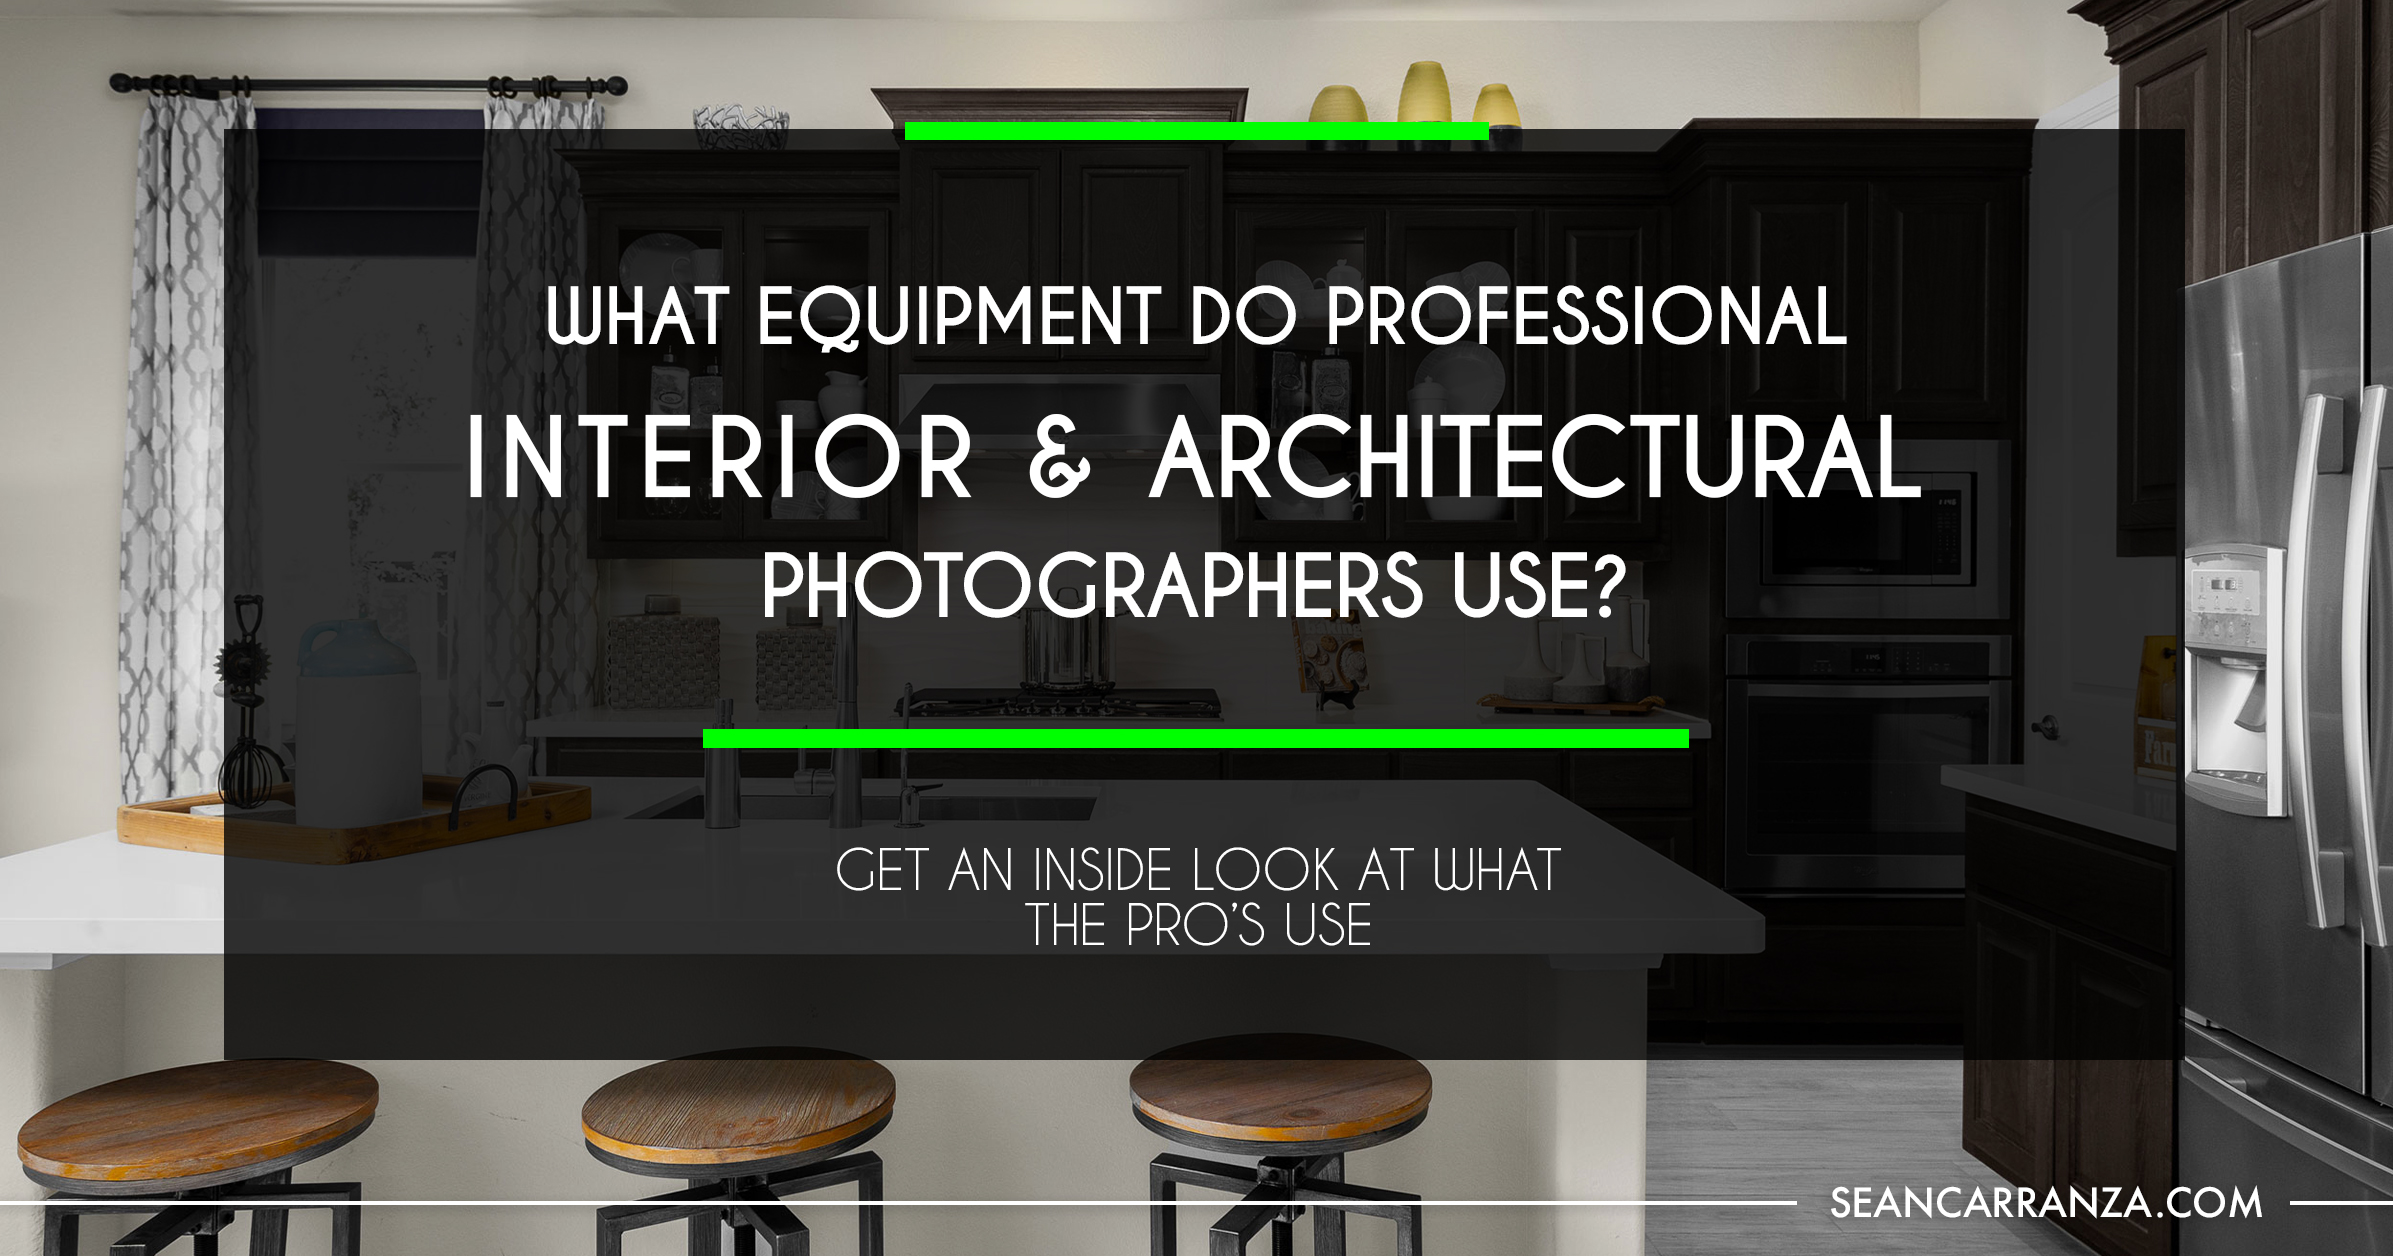 BLOG-What-Equipment-Do-Pro-Interior-and-Architectural-Photographers-Use.jpg